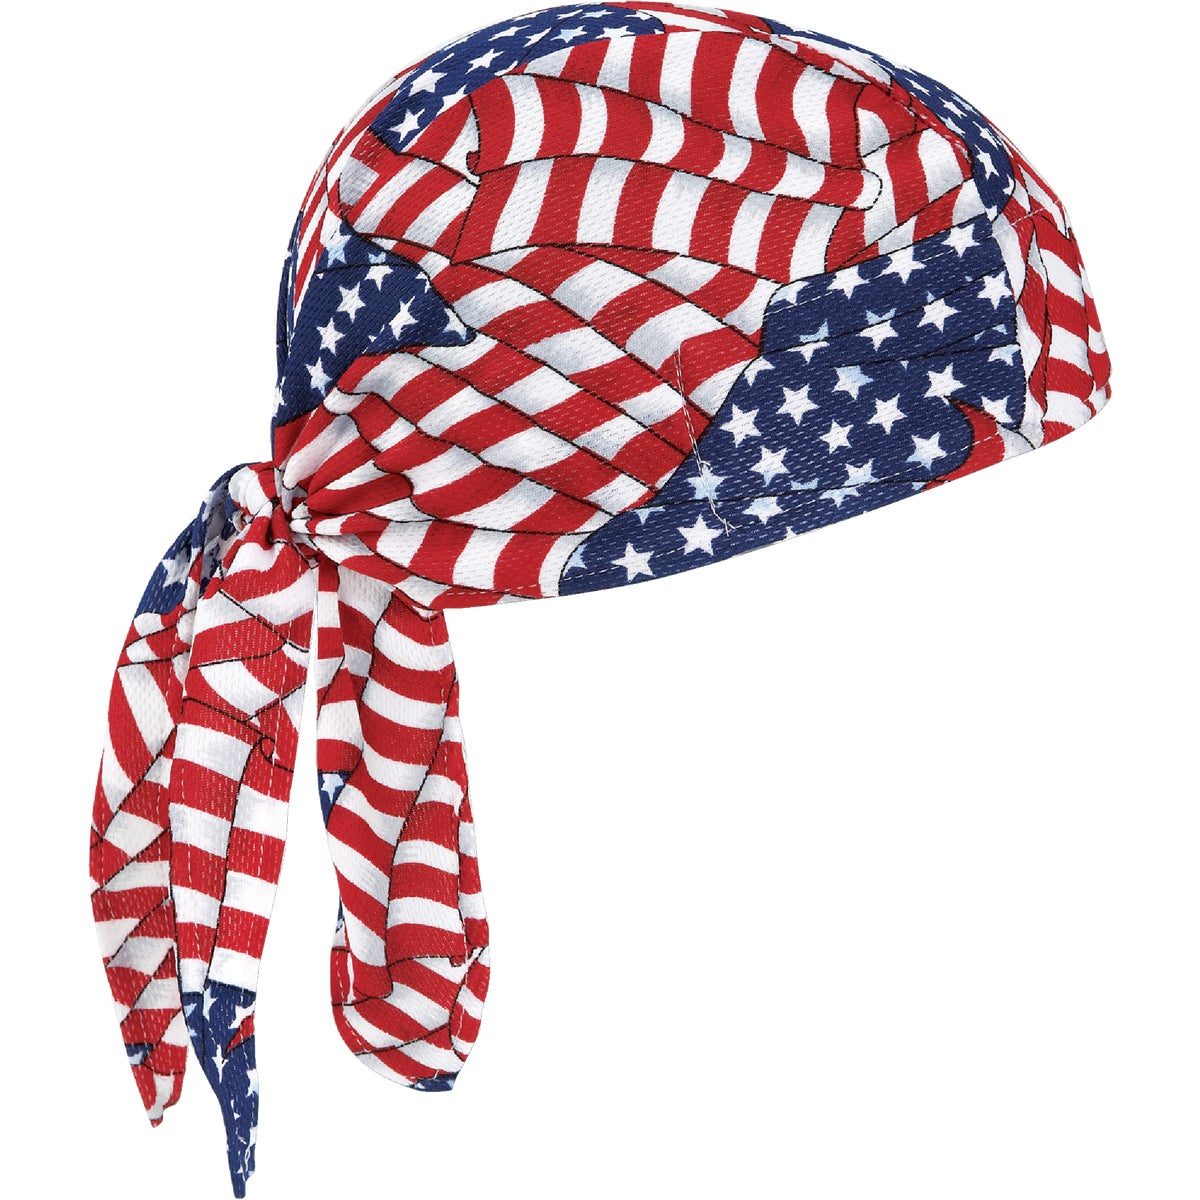 STARS STRIPES DEW RAG